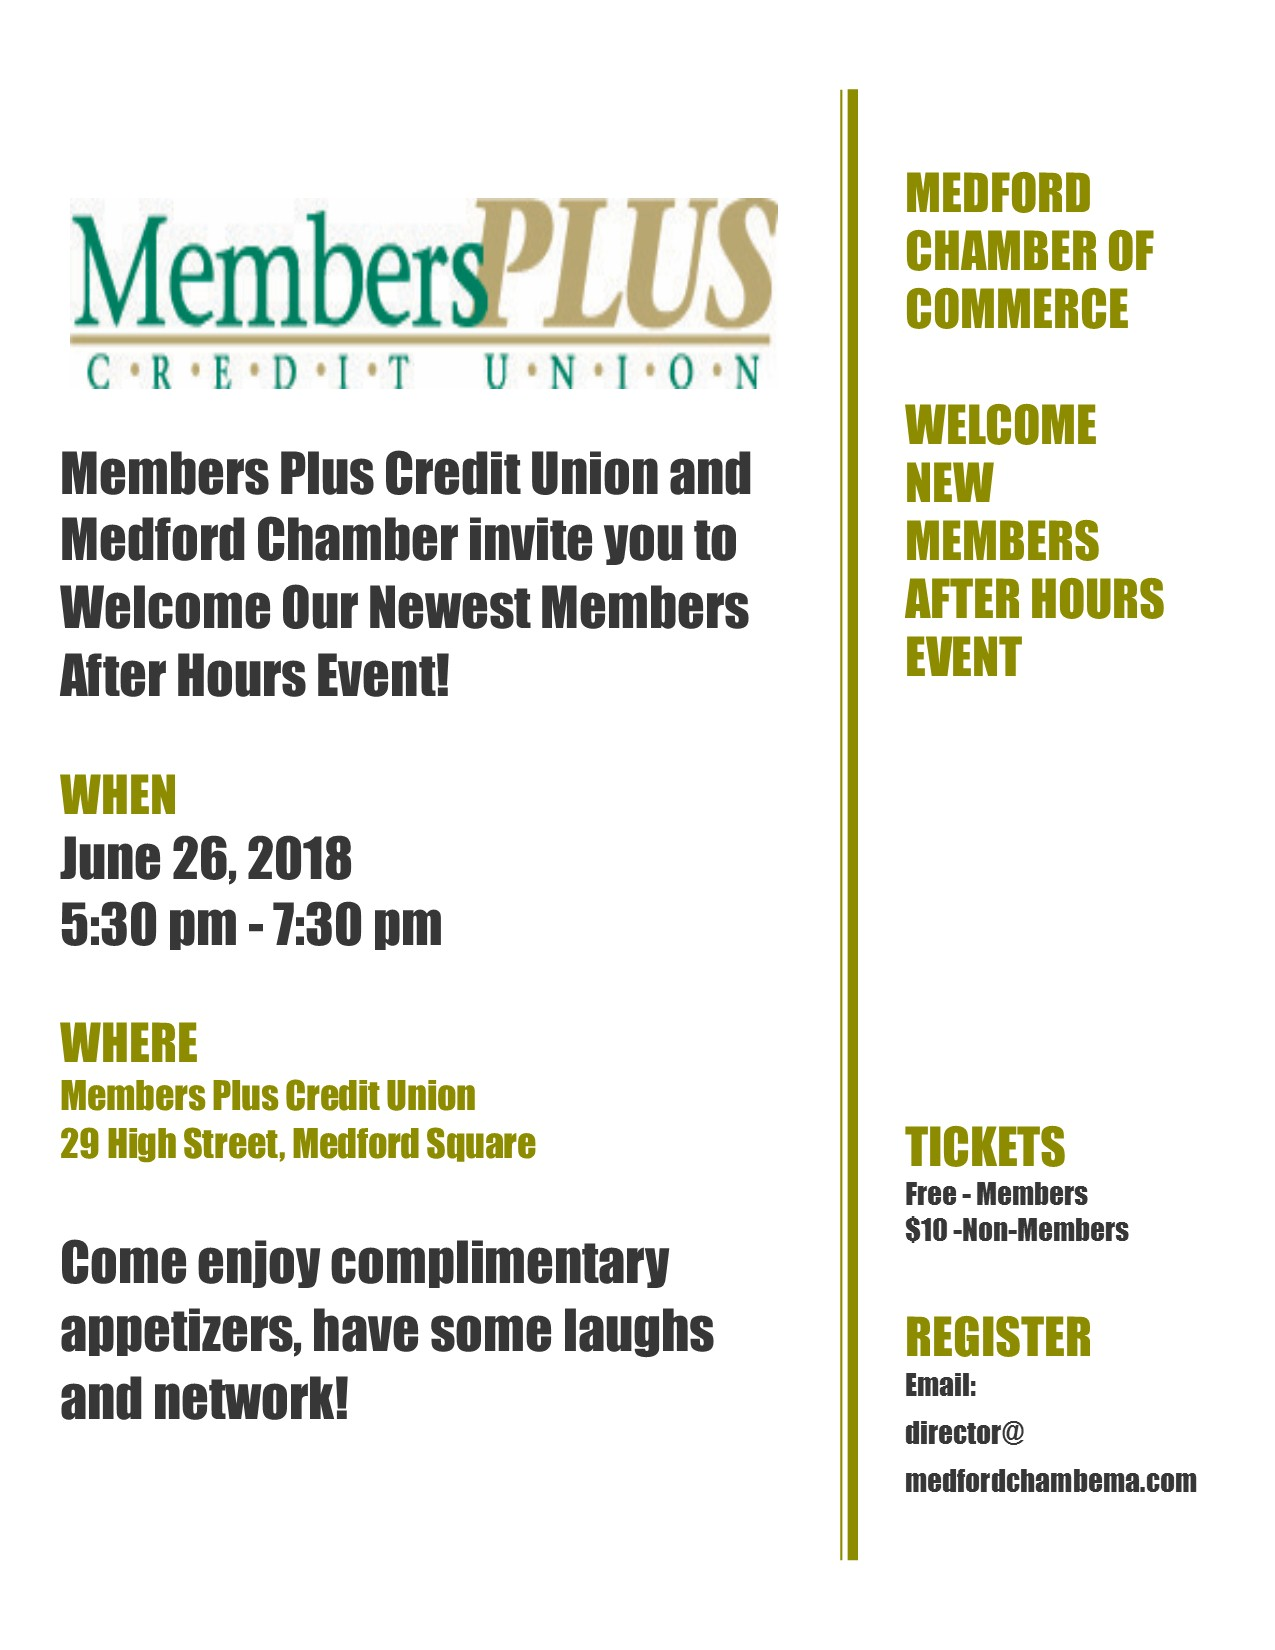 Members-Plus-3--June-2018-After-Hours-event--flyer.jpg